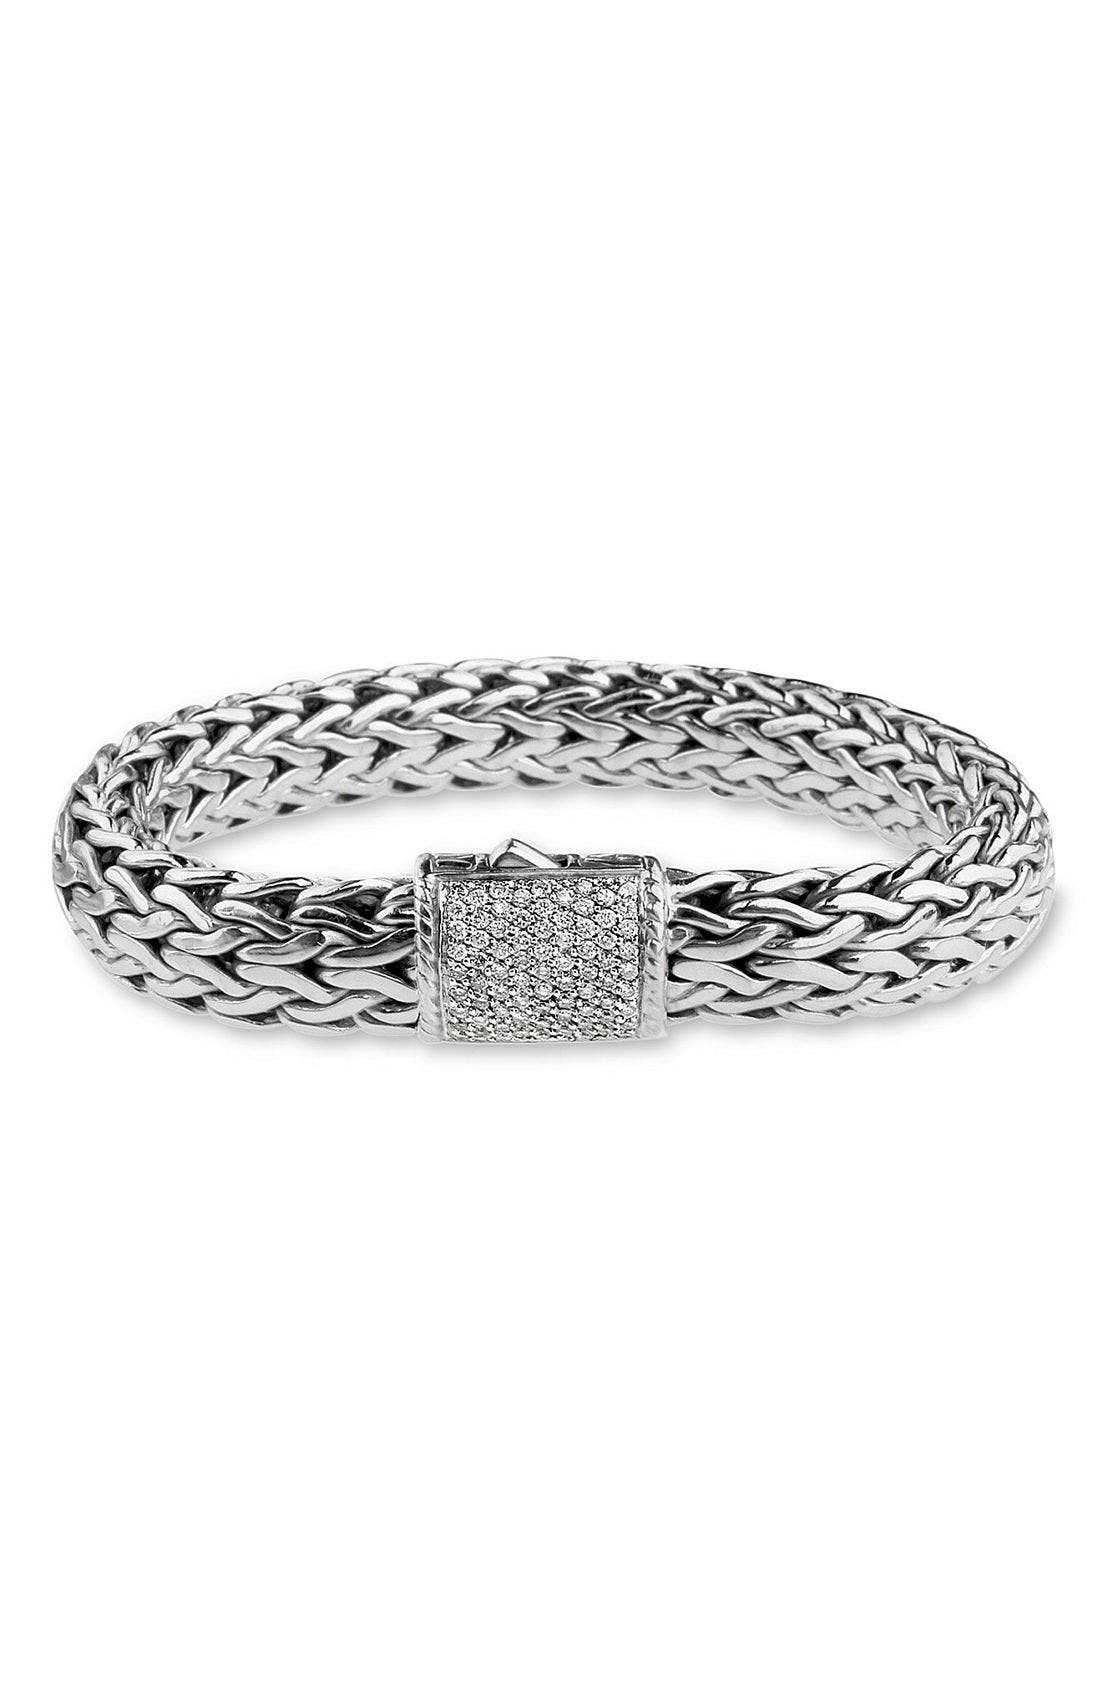 Alternate Image 1 Selected - John Hardy 'Classic Chain' Large Pavé Diamond Bracelet